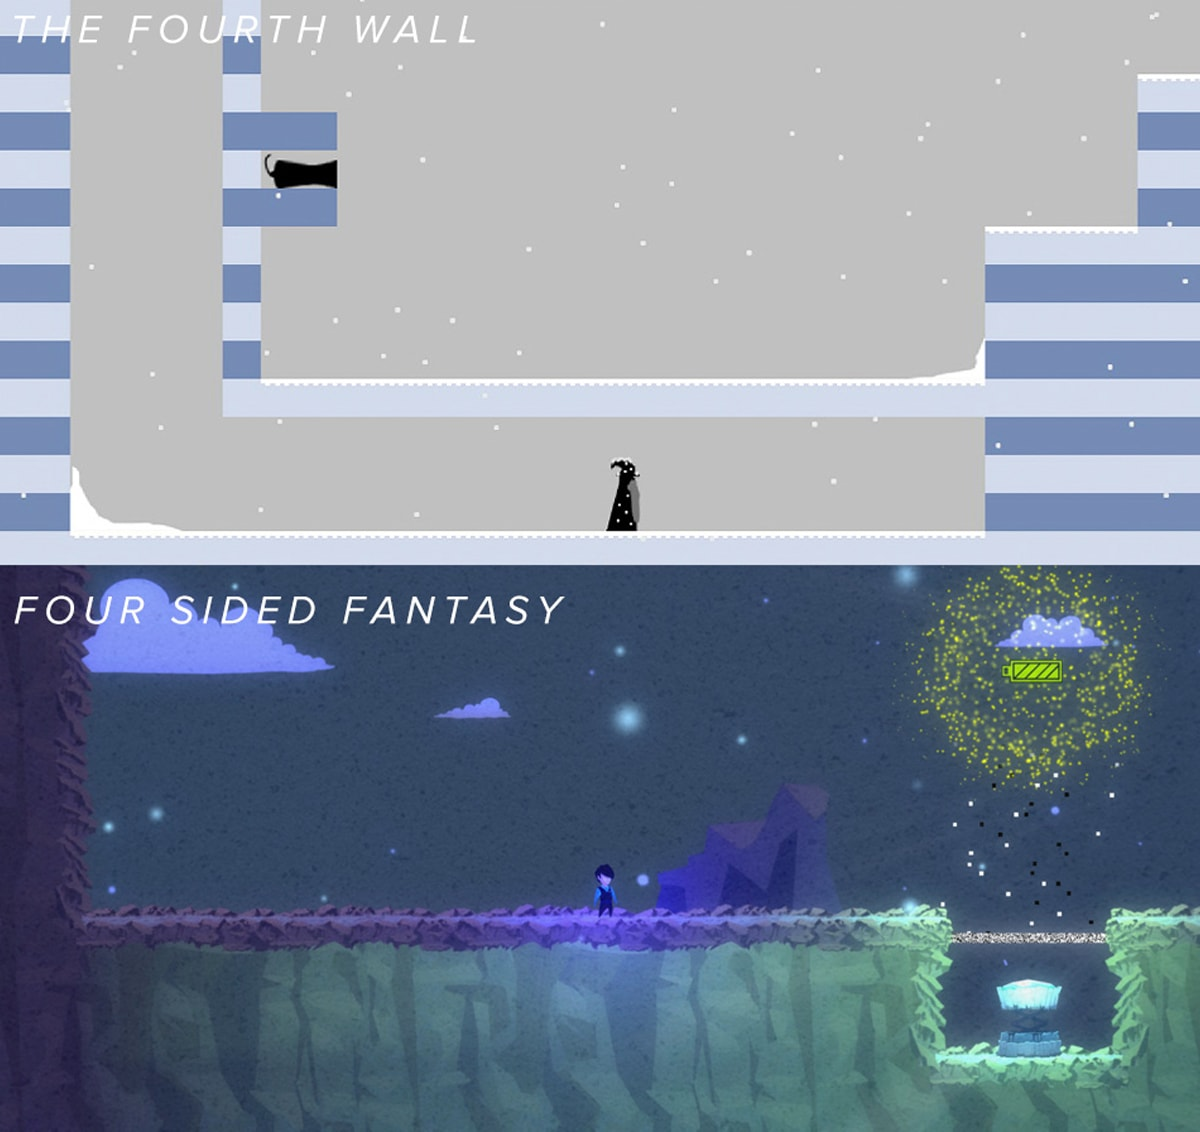 Comparison of screenshots from The Fourth Wall and Four Sided Fantasy